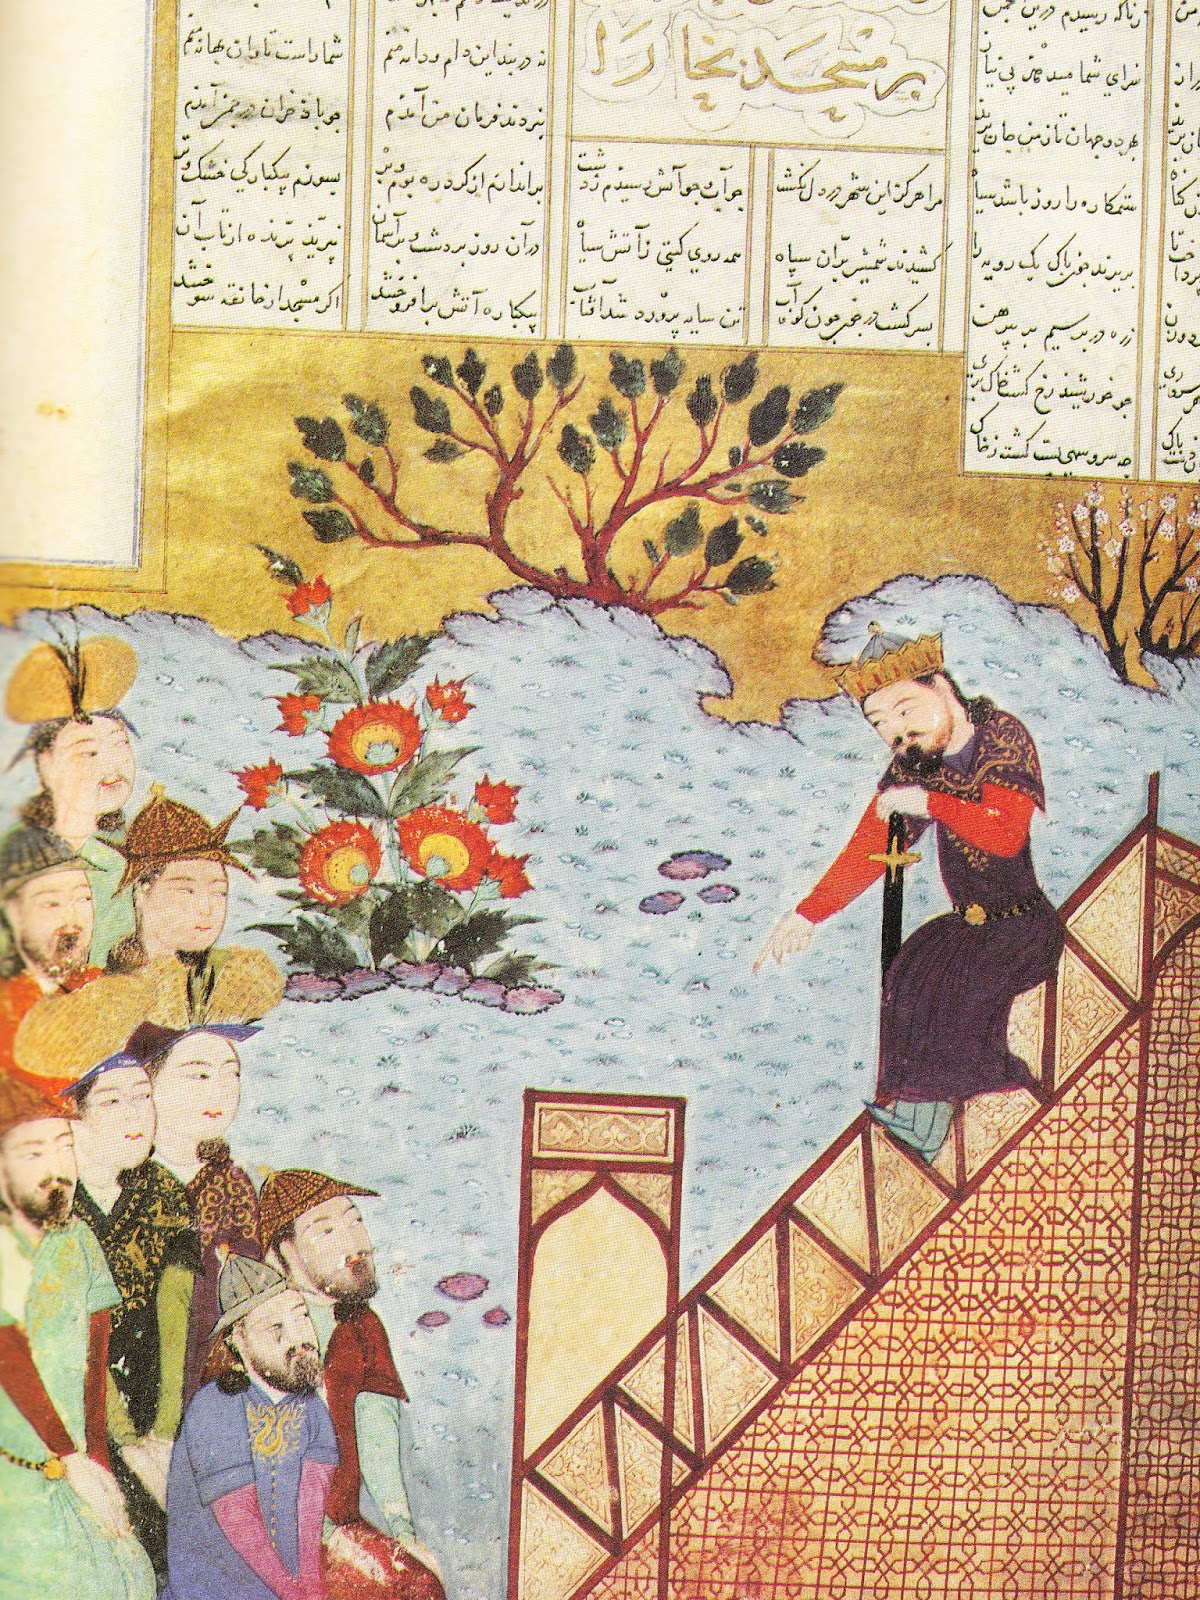 did the mongols really hate islam or just the muslims arrogance second 1 bp pot com m47qy1lwlme ugou8xedxii aaaaaaaaa g cxy9bcxpw6g s1600 khan at bukhara jpg